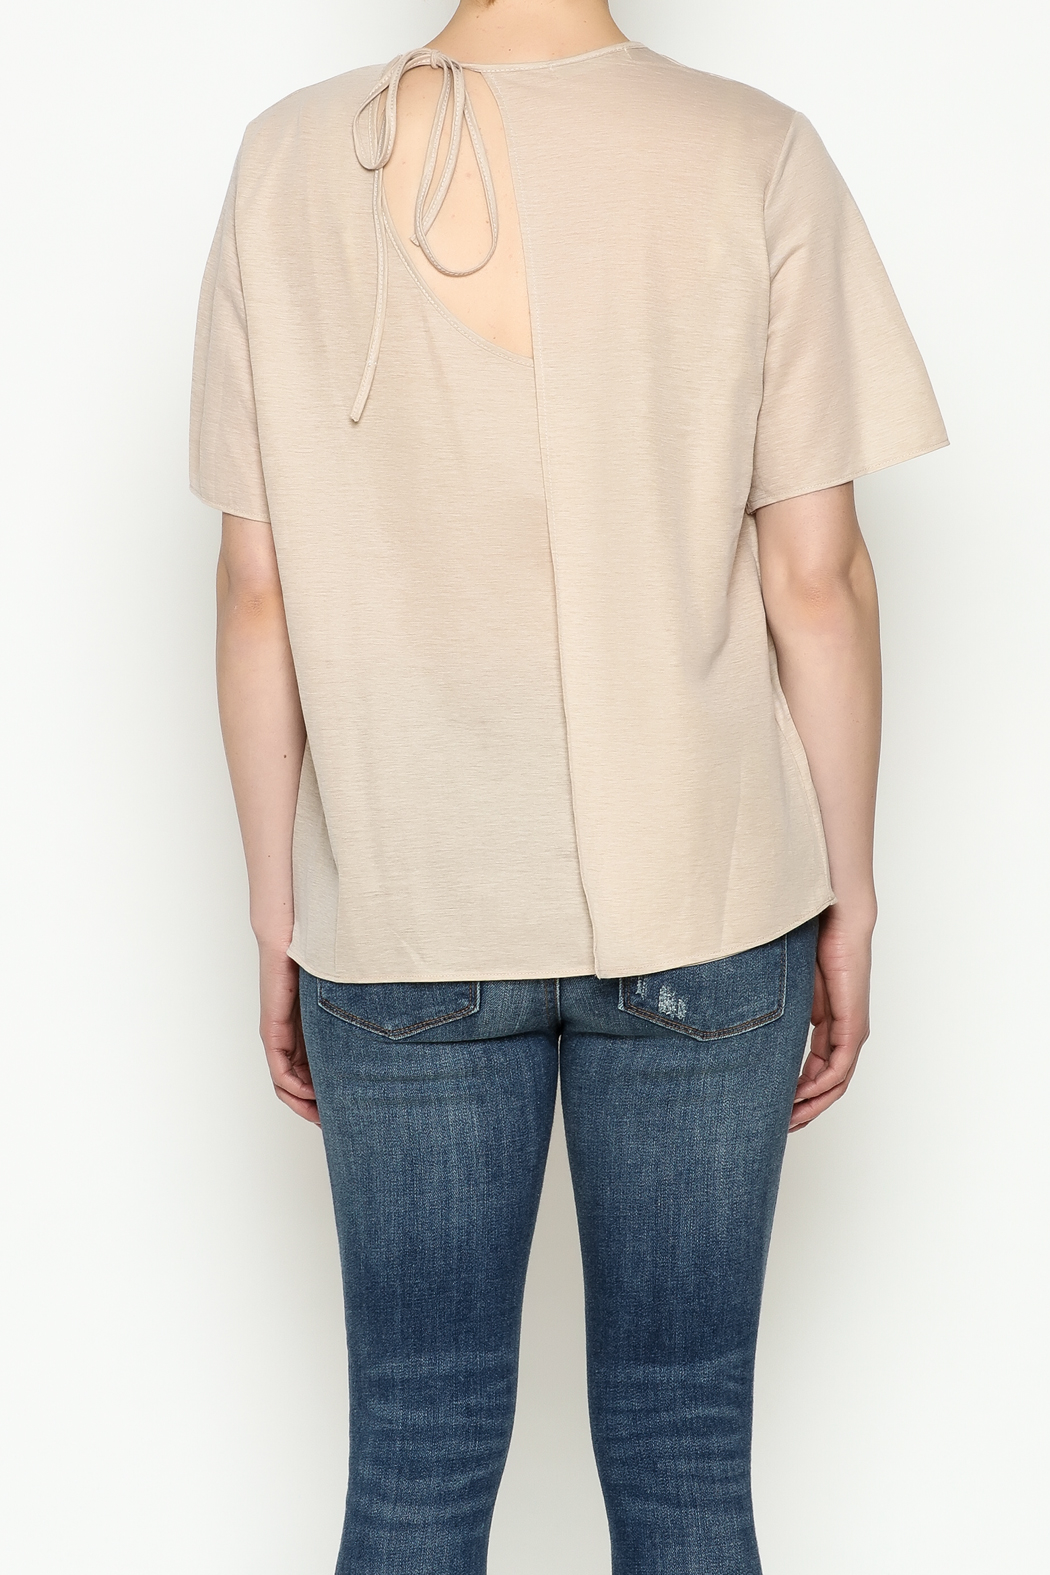 THINK CLOSET Simple Tie Tee - Back Cropped Image